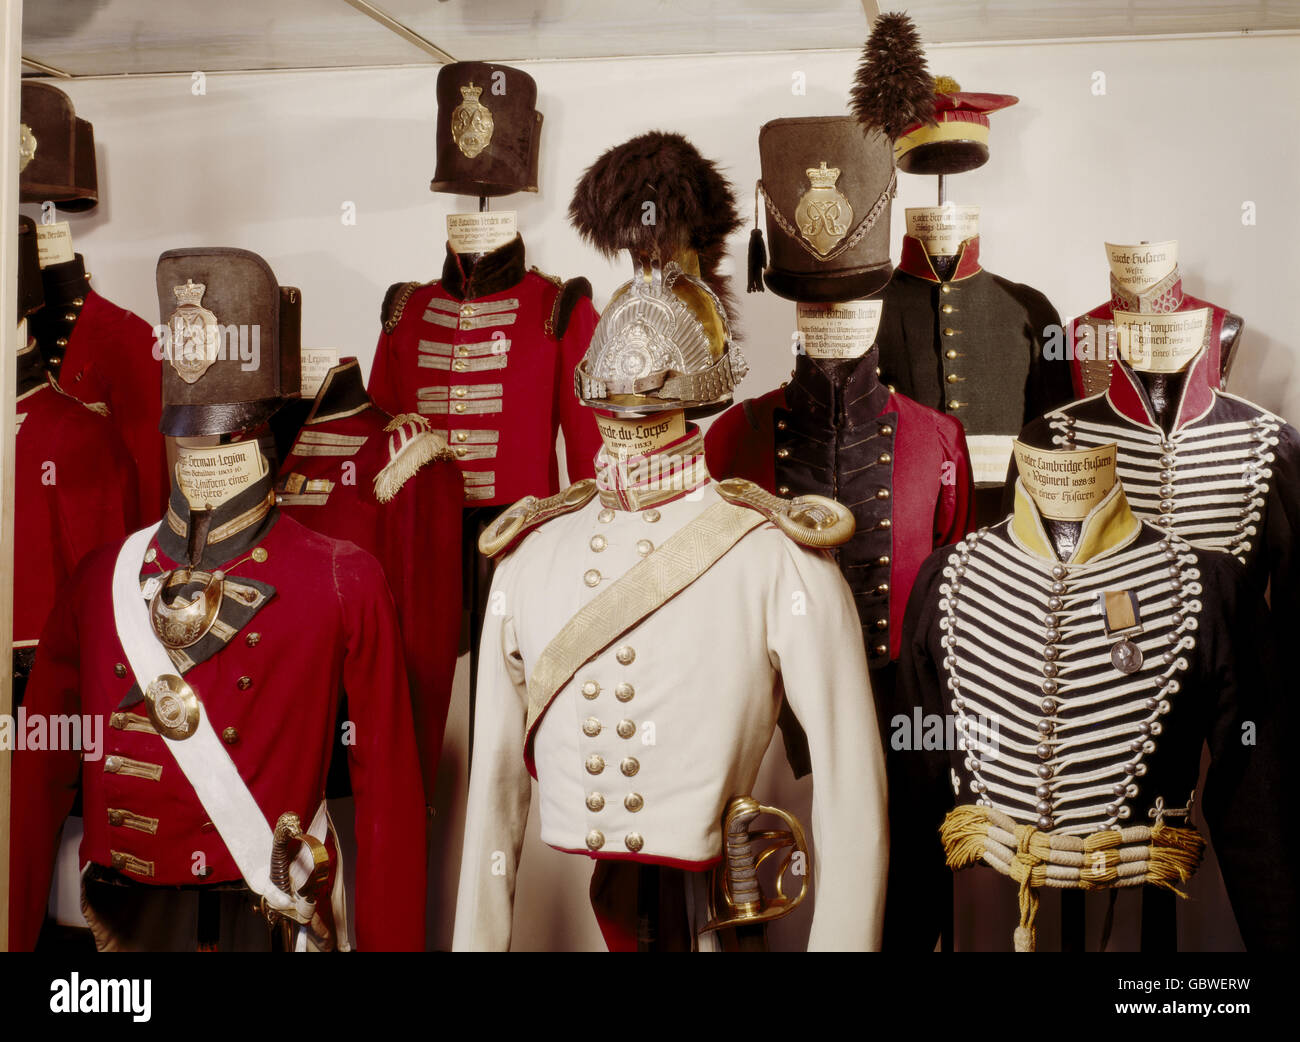 military, Germany, Hanover, uniforms, infantry, cavalry, Landwehr, 1803 - 1833, Bomann Museum, Celle, Germany, Additional - Stock Image